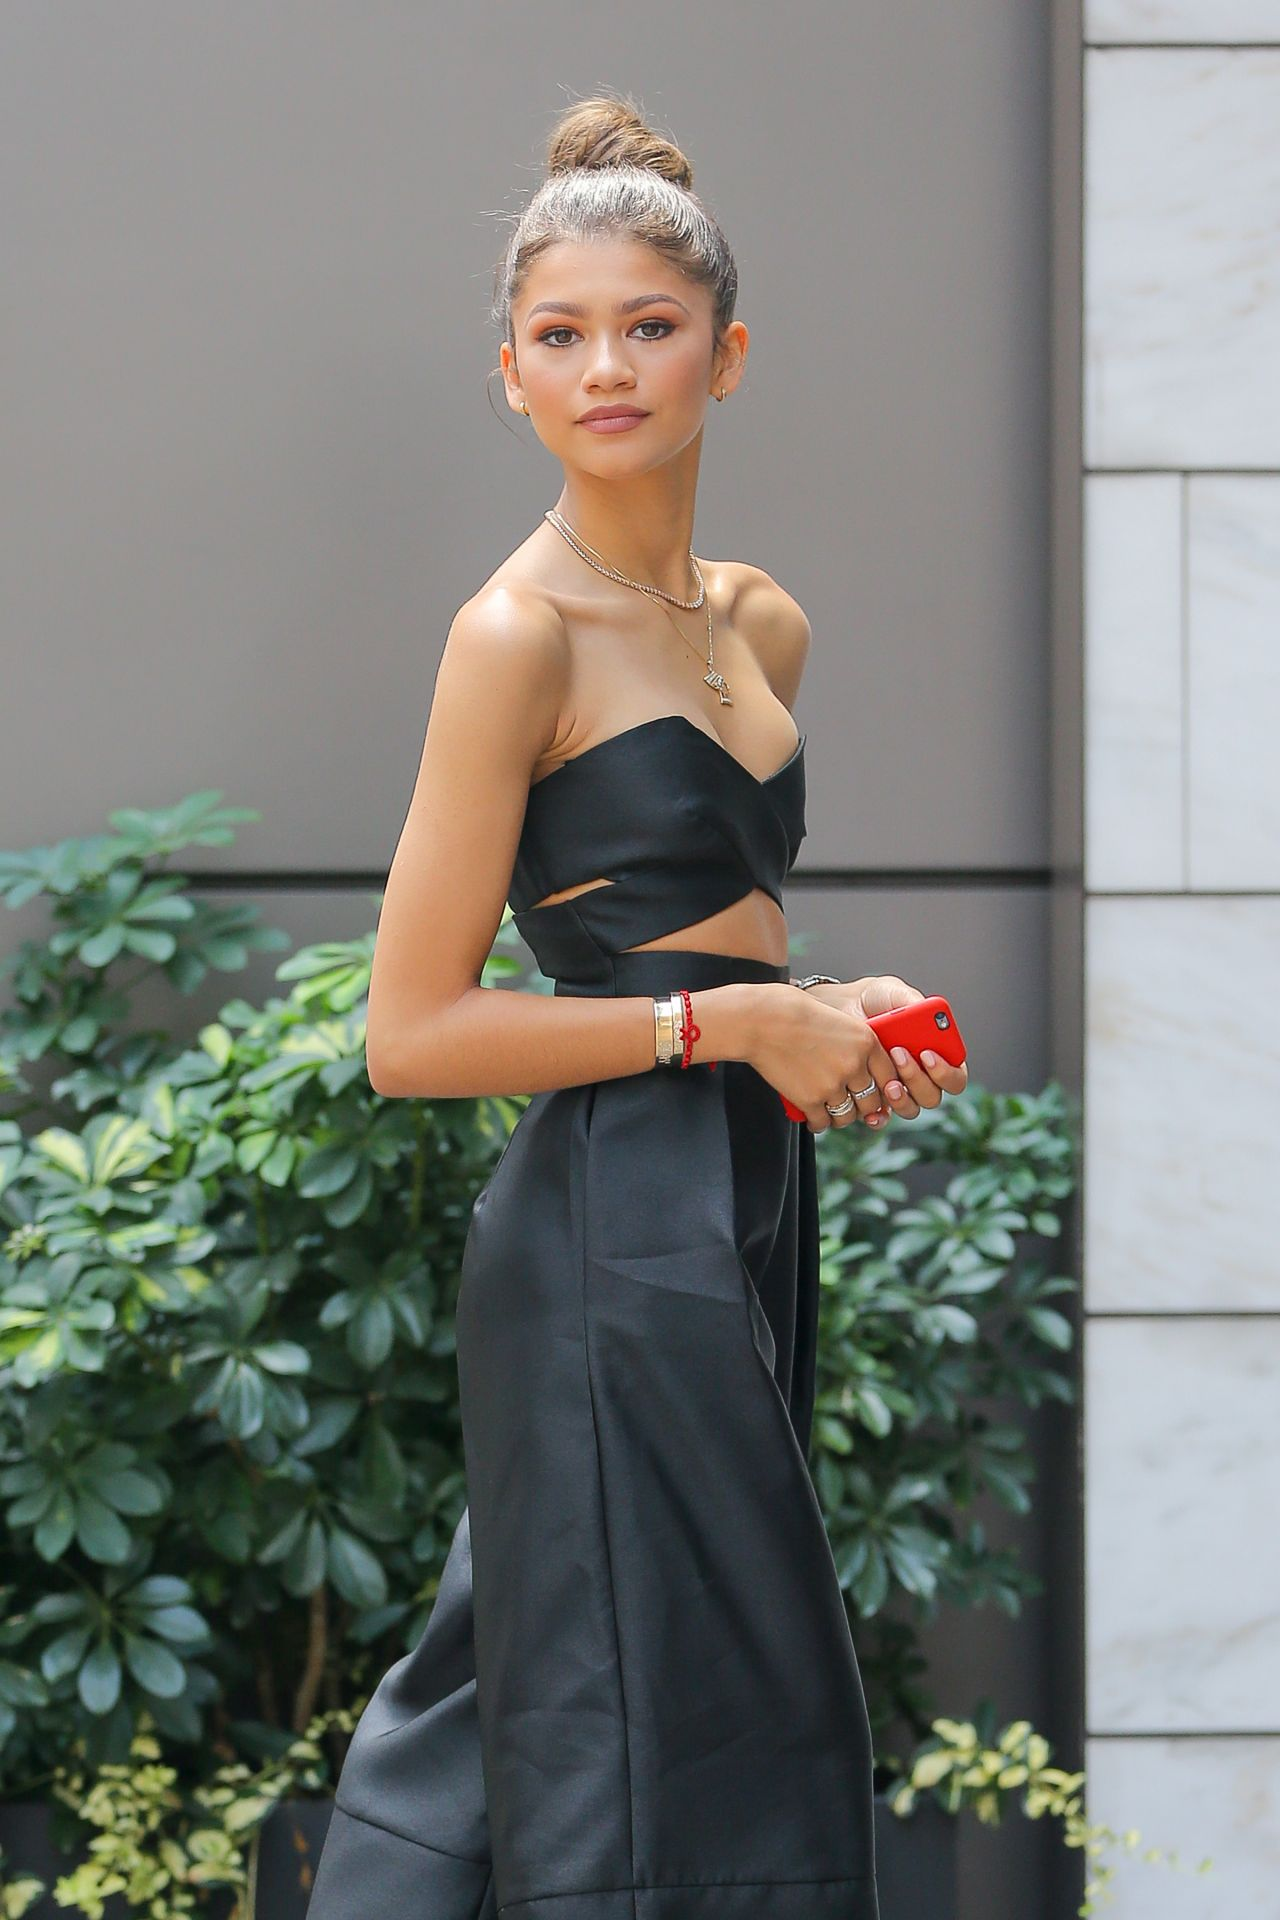 zendaya-coleman-in-solace-london-out-in-new-york-city